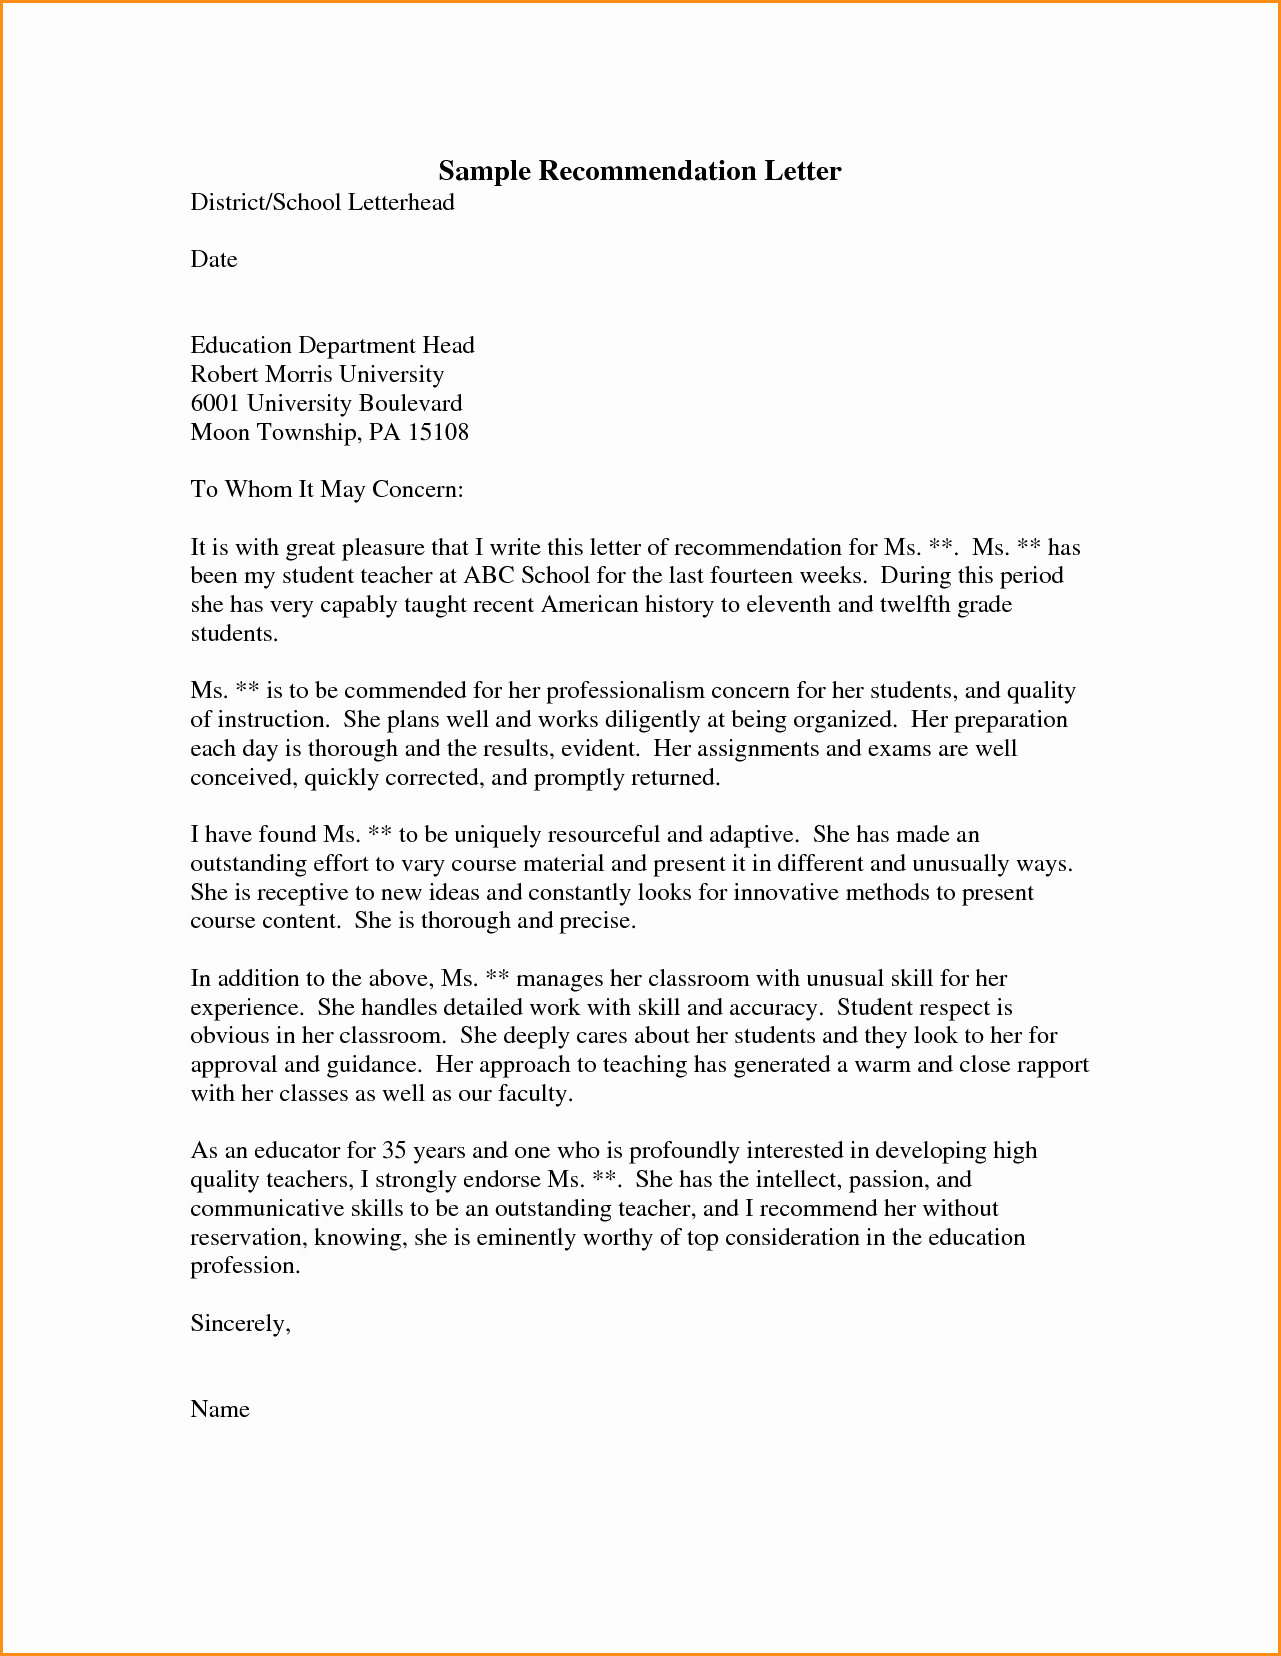 Letter Of Recommendation Sample Template Inspirational 6 Graduate Re Mendation Letter Samples